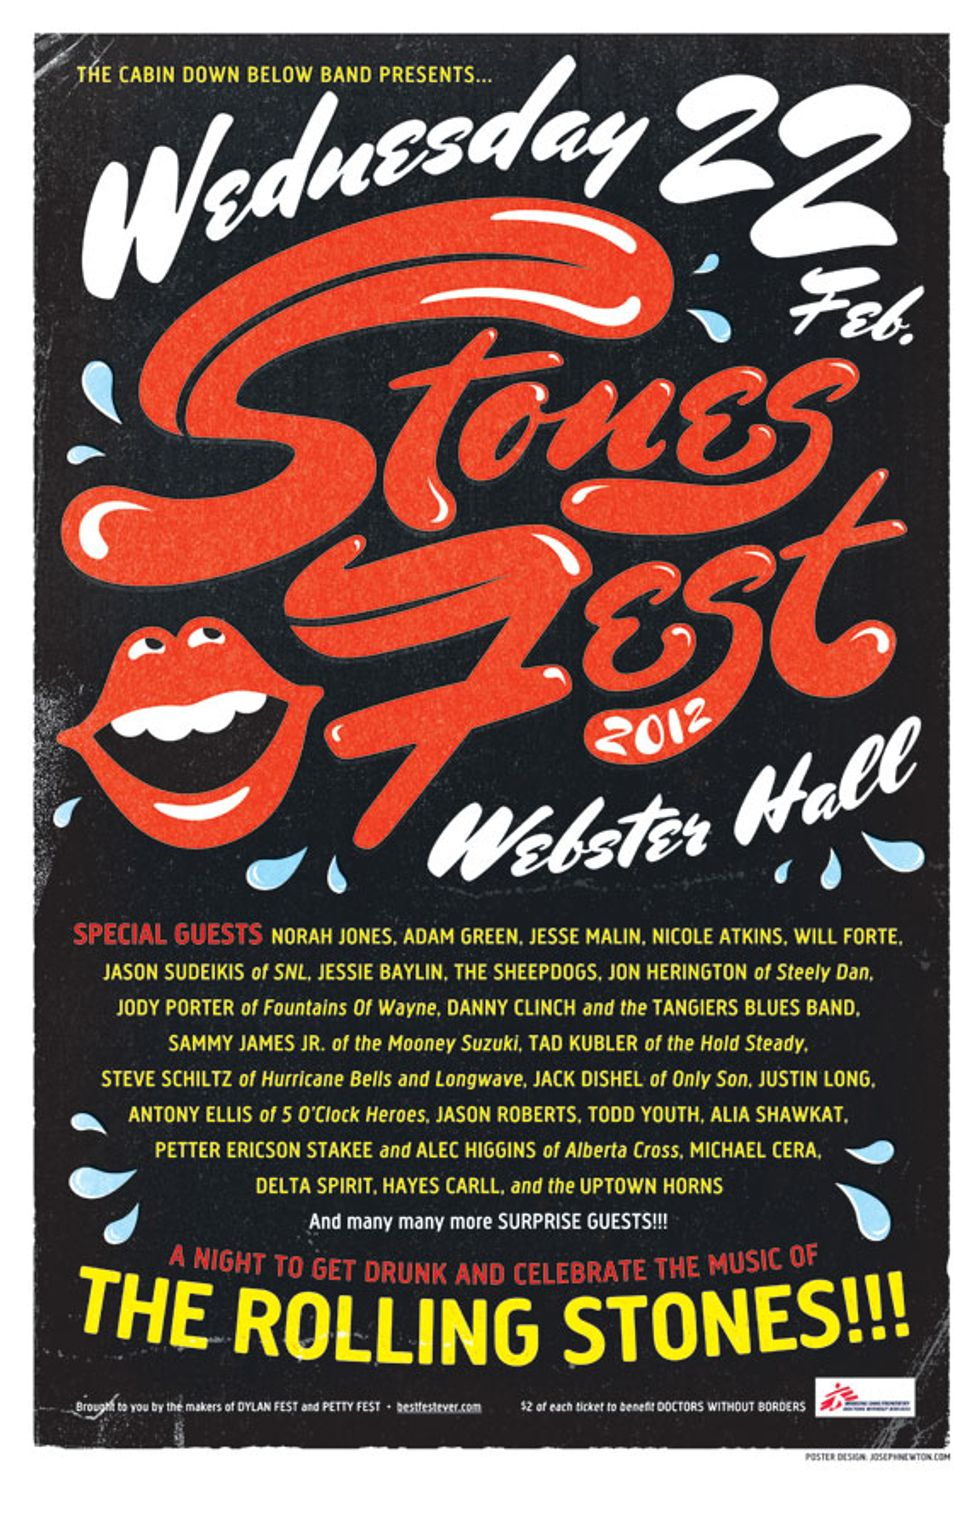 Tips for Today: Stones Fest 2012 + DJ Spooky + The Hairs